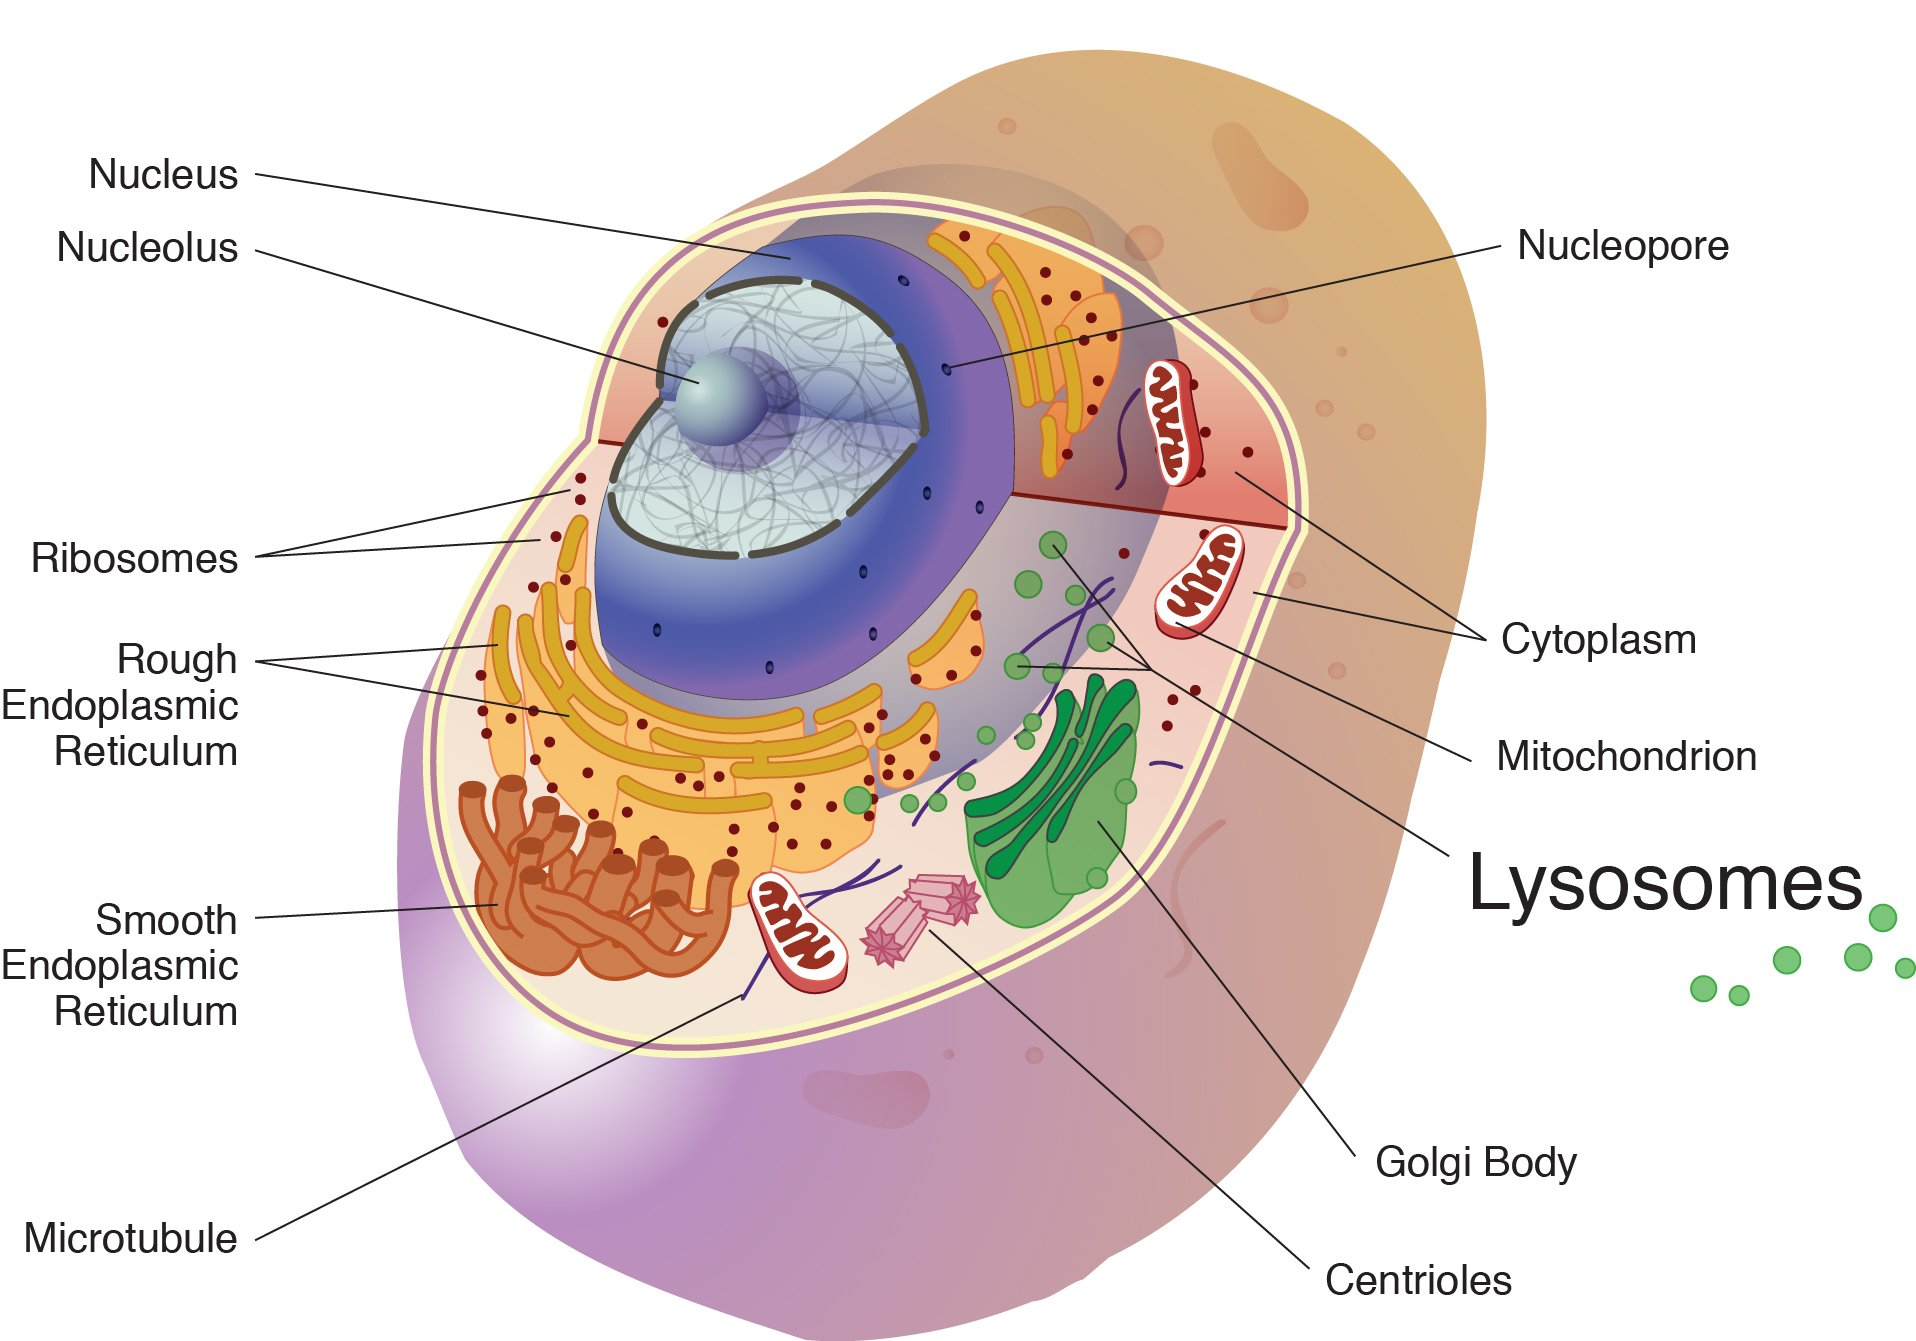 Lysosome national library of medicine pubmed health a lysosome is a membrane bound cell organelle that contains digestive enzymes lysosomes are ccuart Choice Image